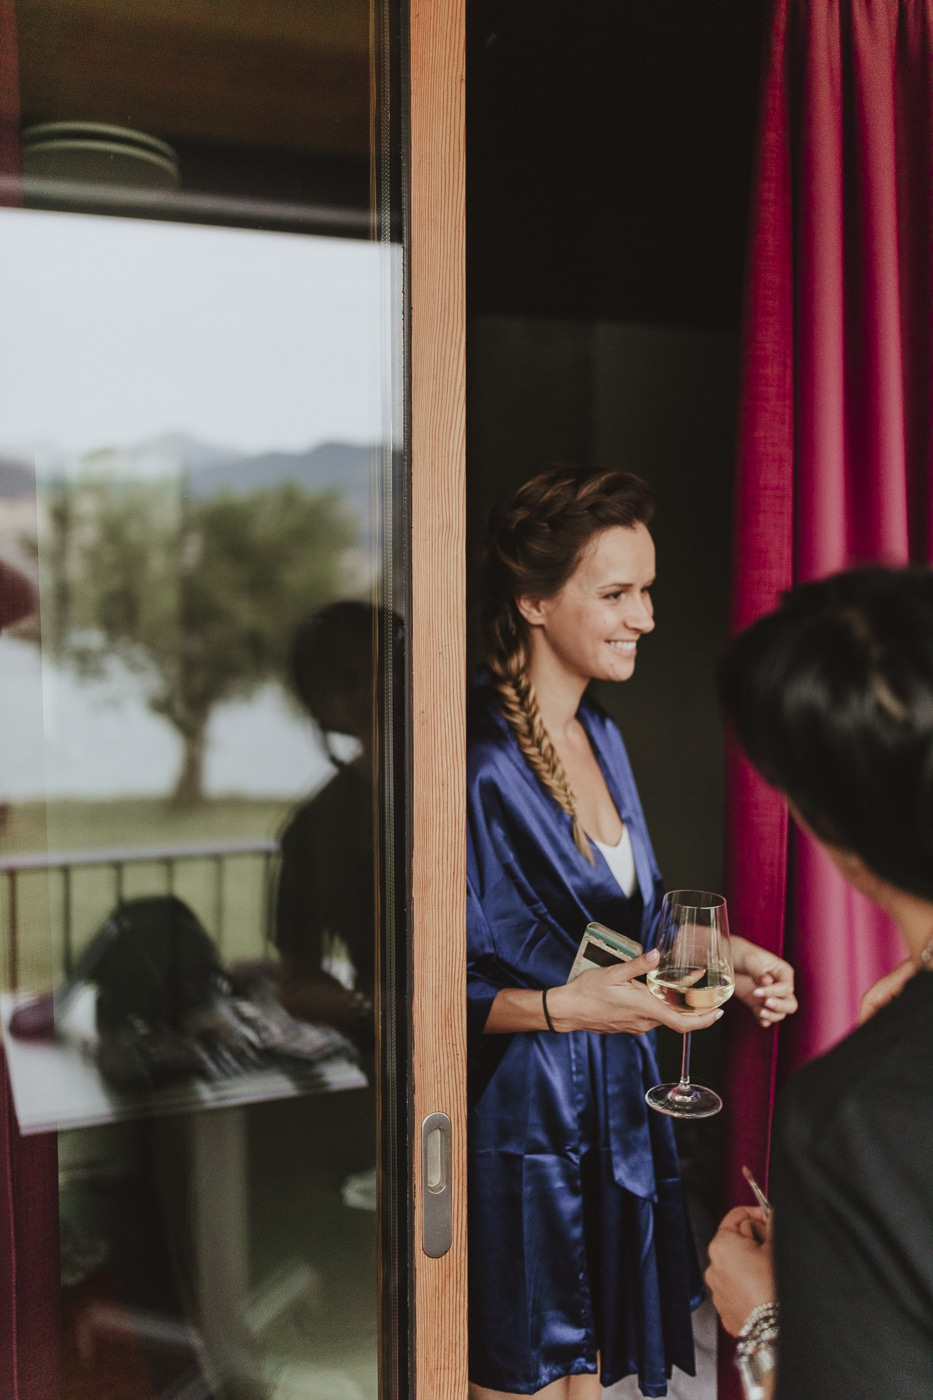 Bridesmaid walking through door wearing blue robe and carrying glass of wine